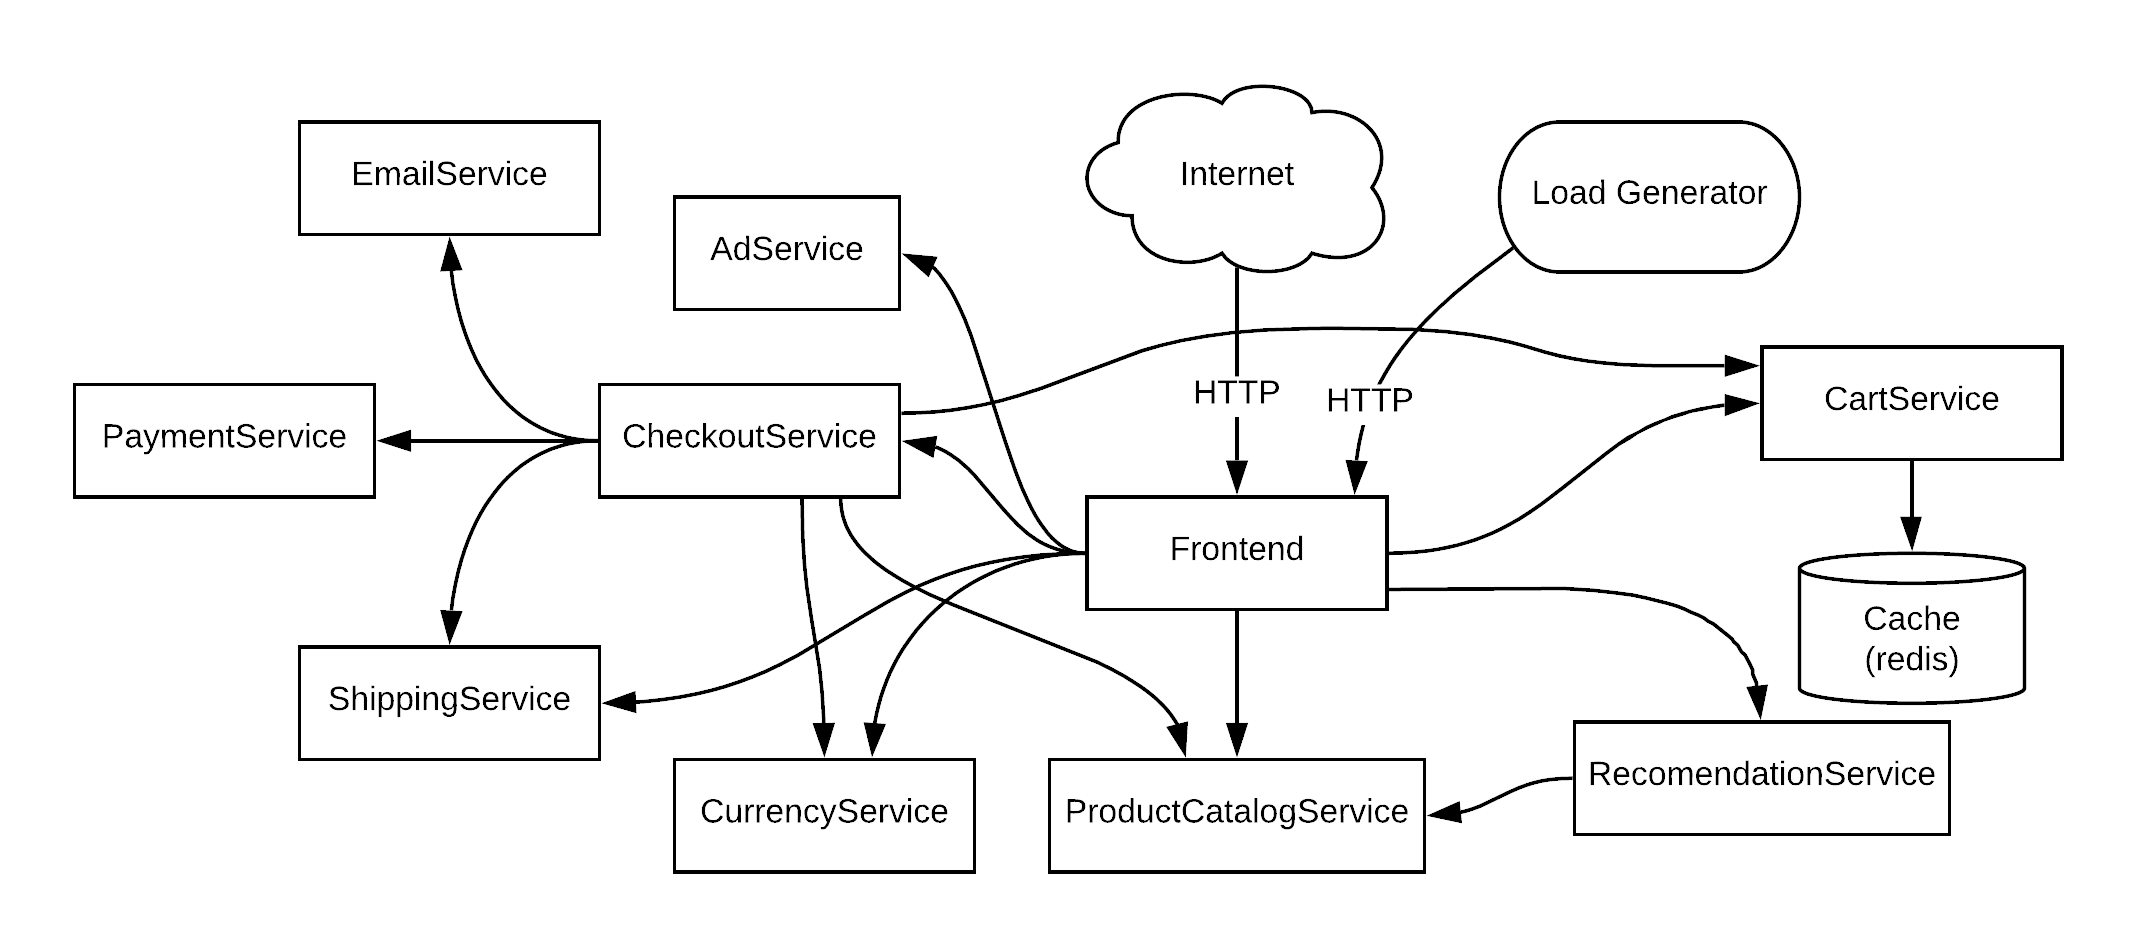 The microservice application architecture